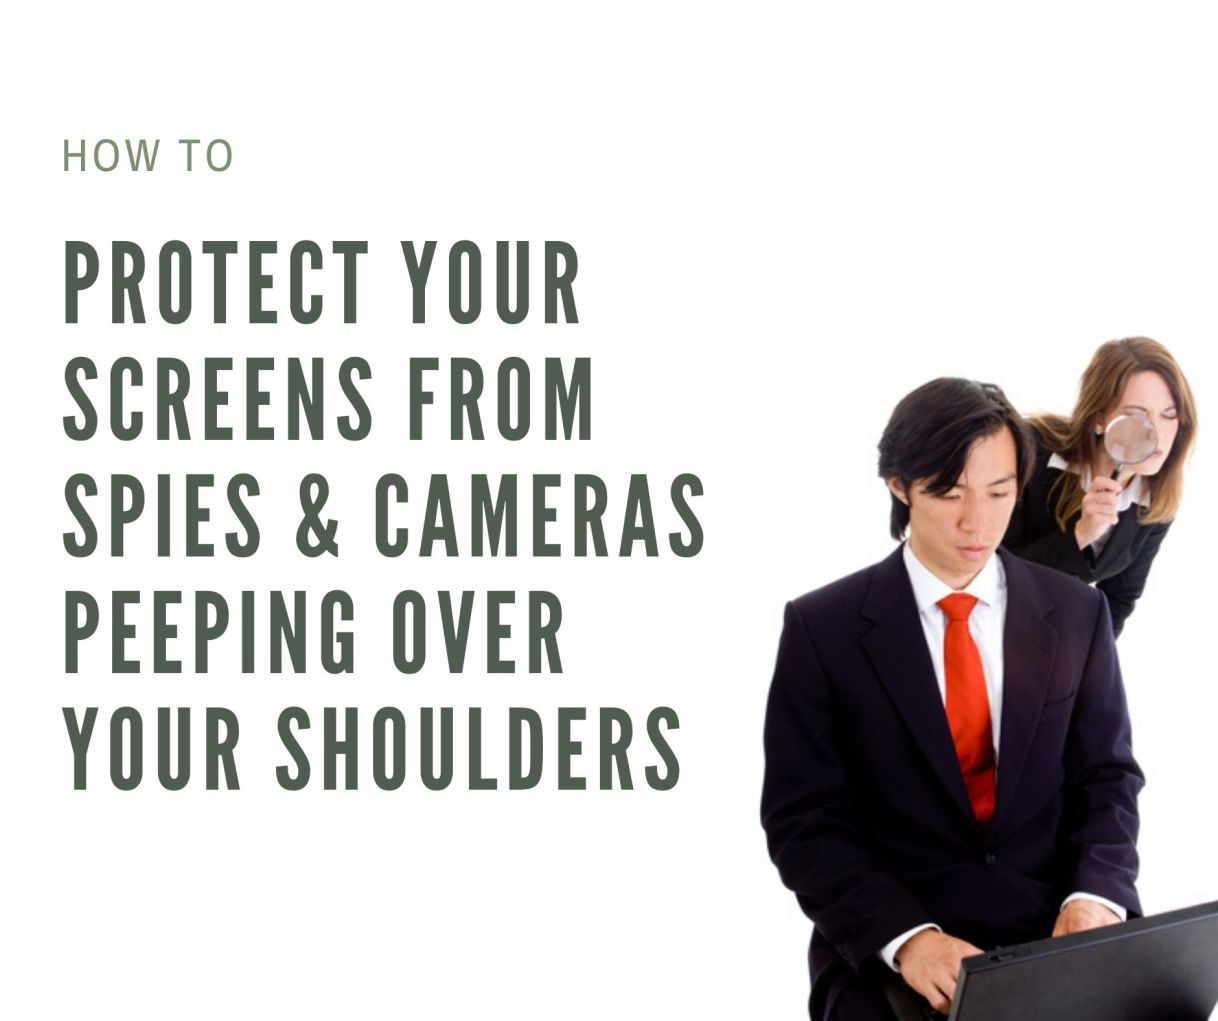 How to protect your screens from spies & cameras from peeping over your shoulders